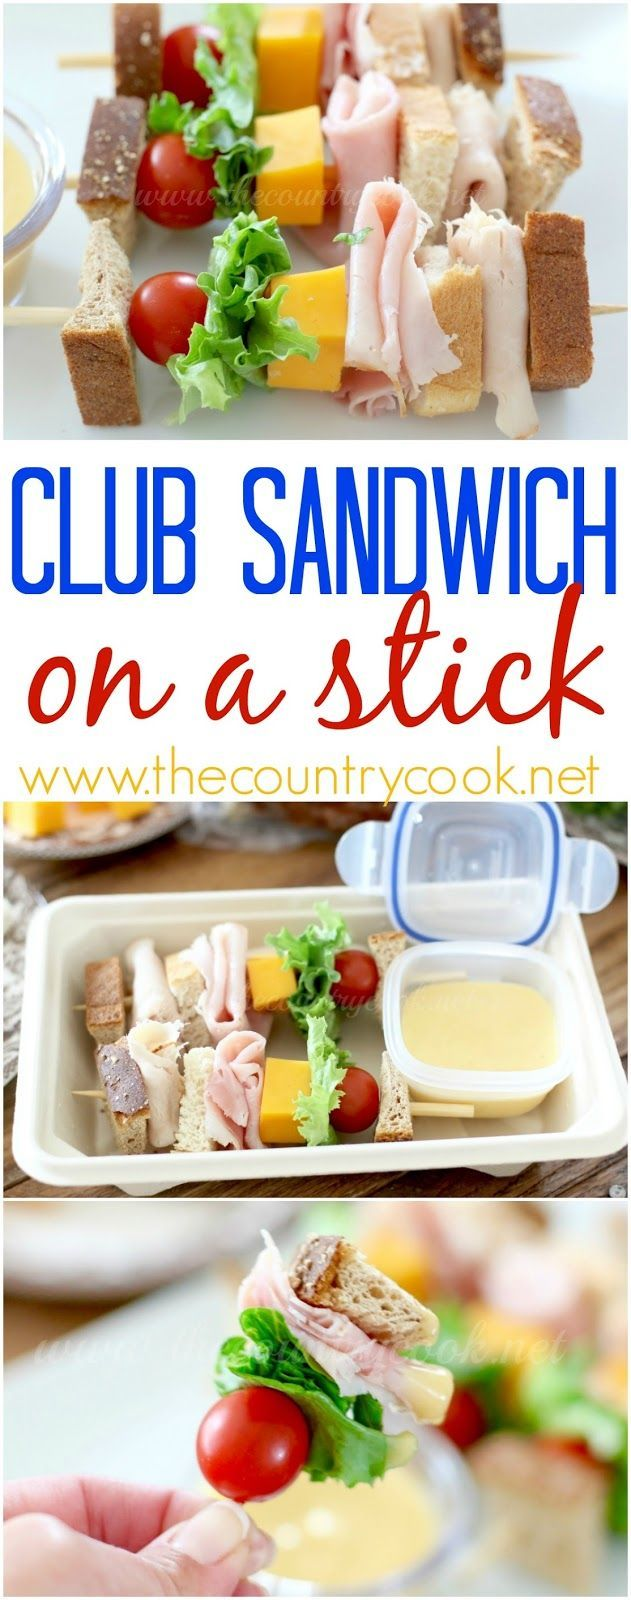 Club Sandwich on a Stick recipe from The Country Cook. Perfect for back-to-school lunches for kids (and grown-ups too!)